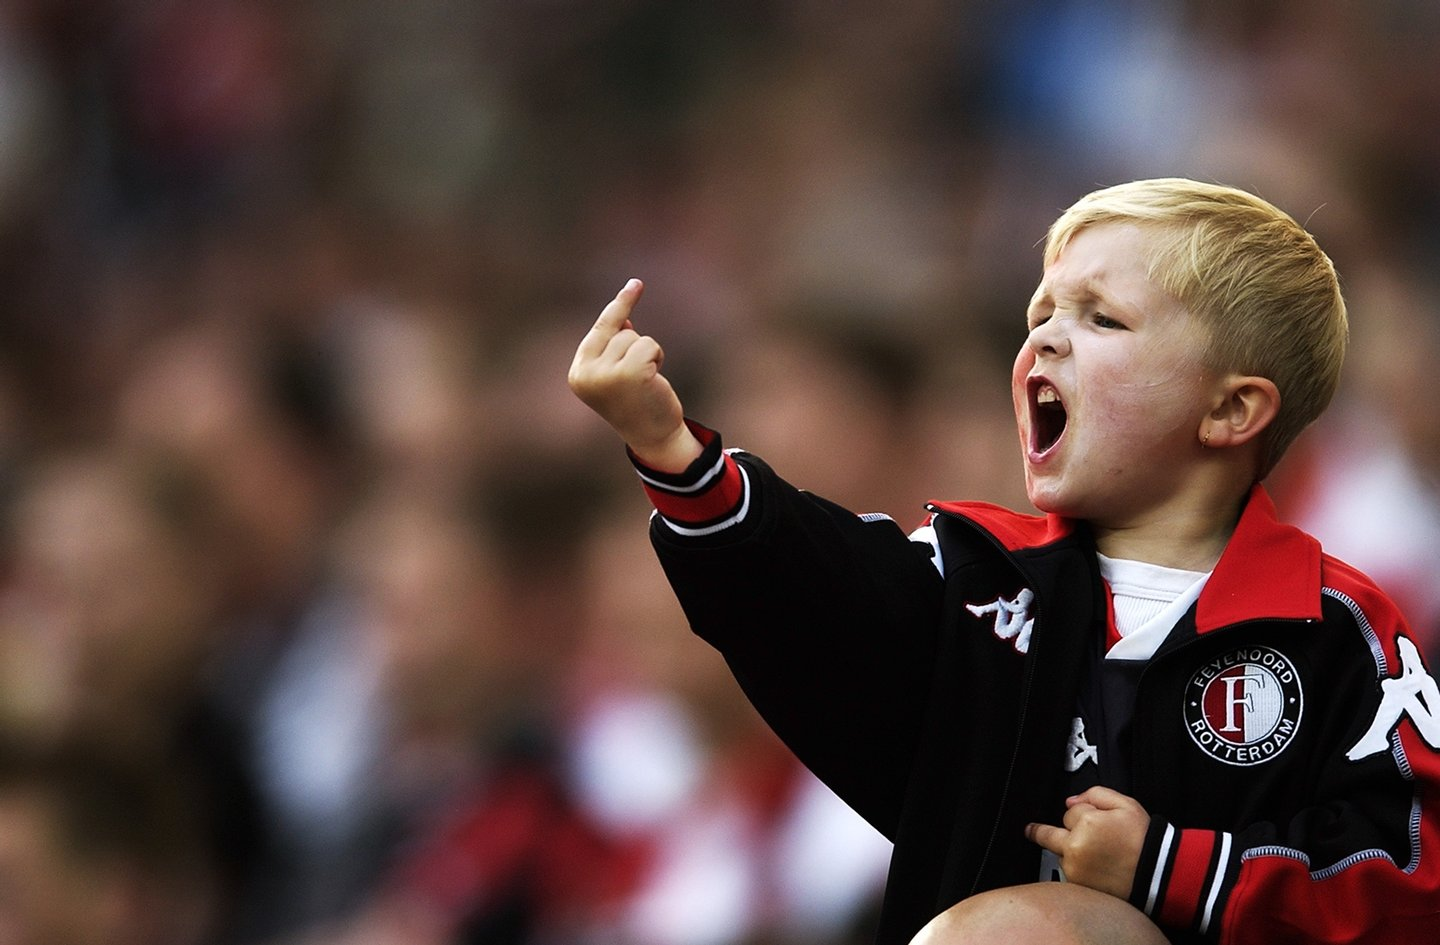 A young Feyenoord fan